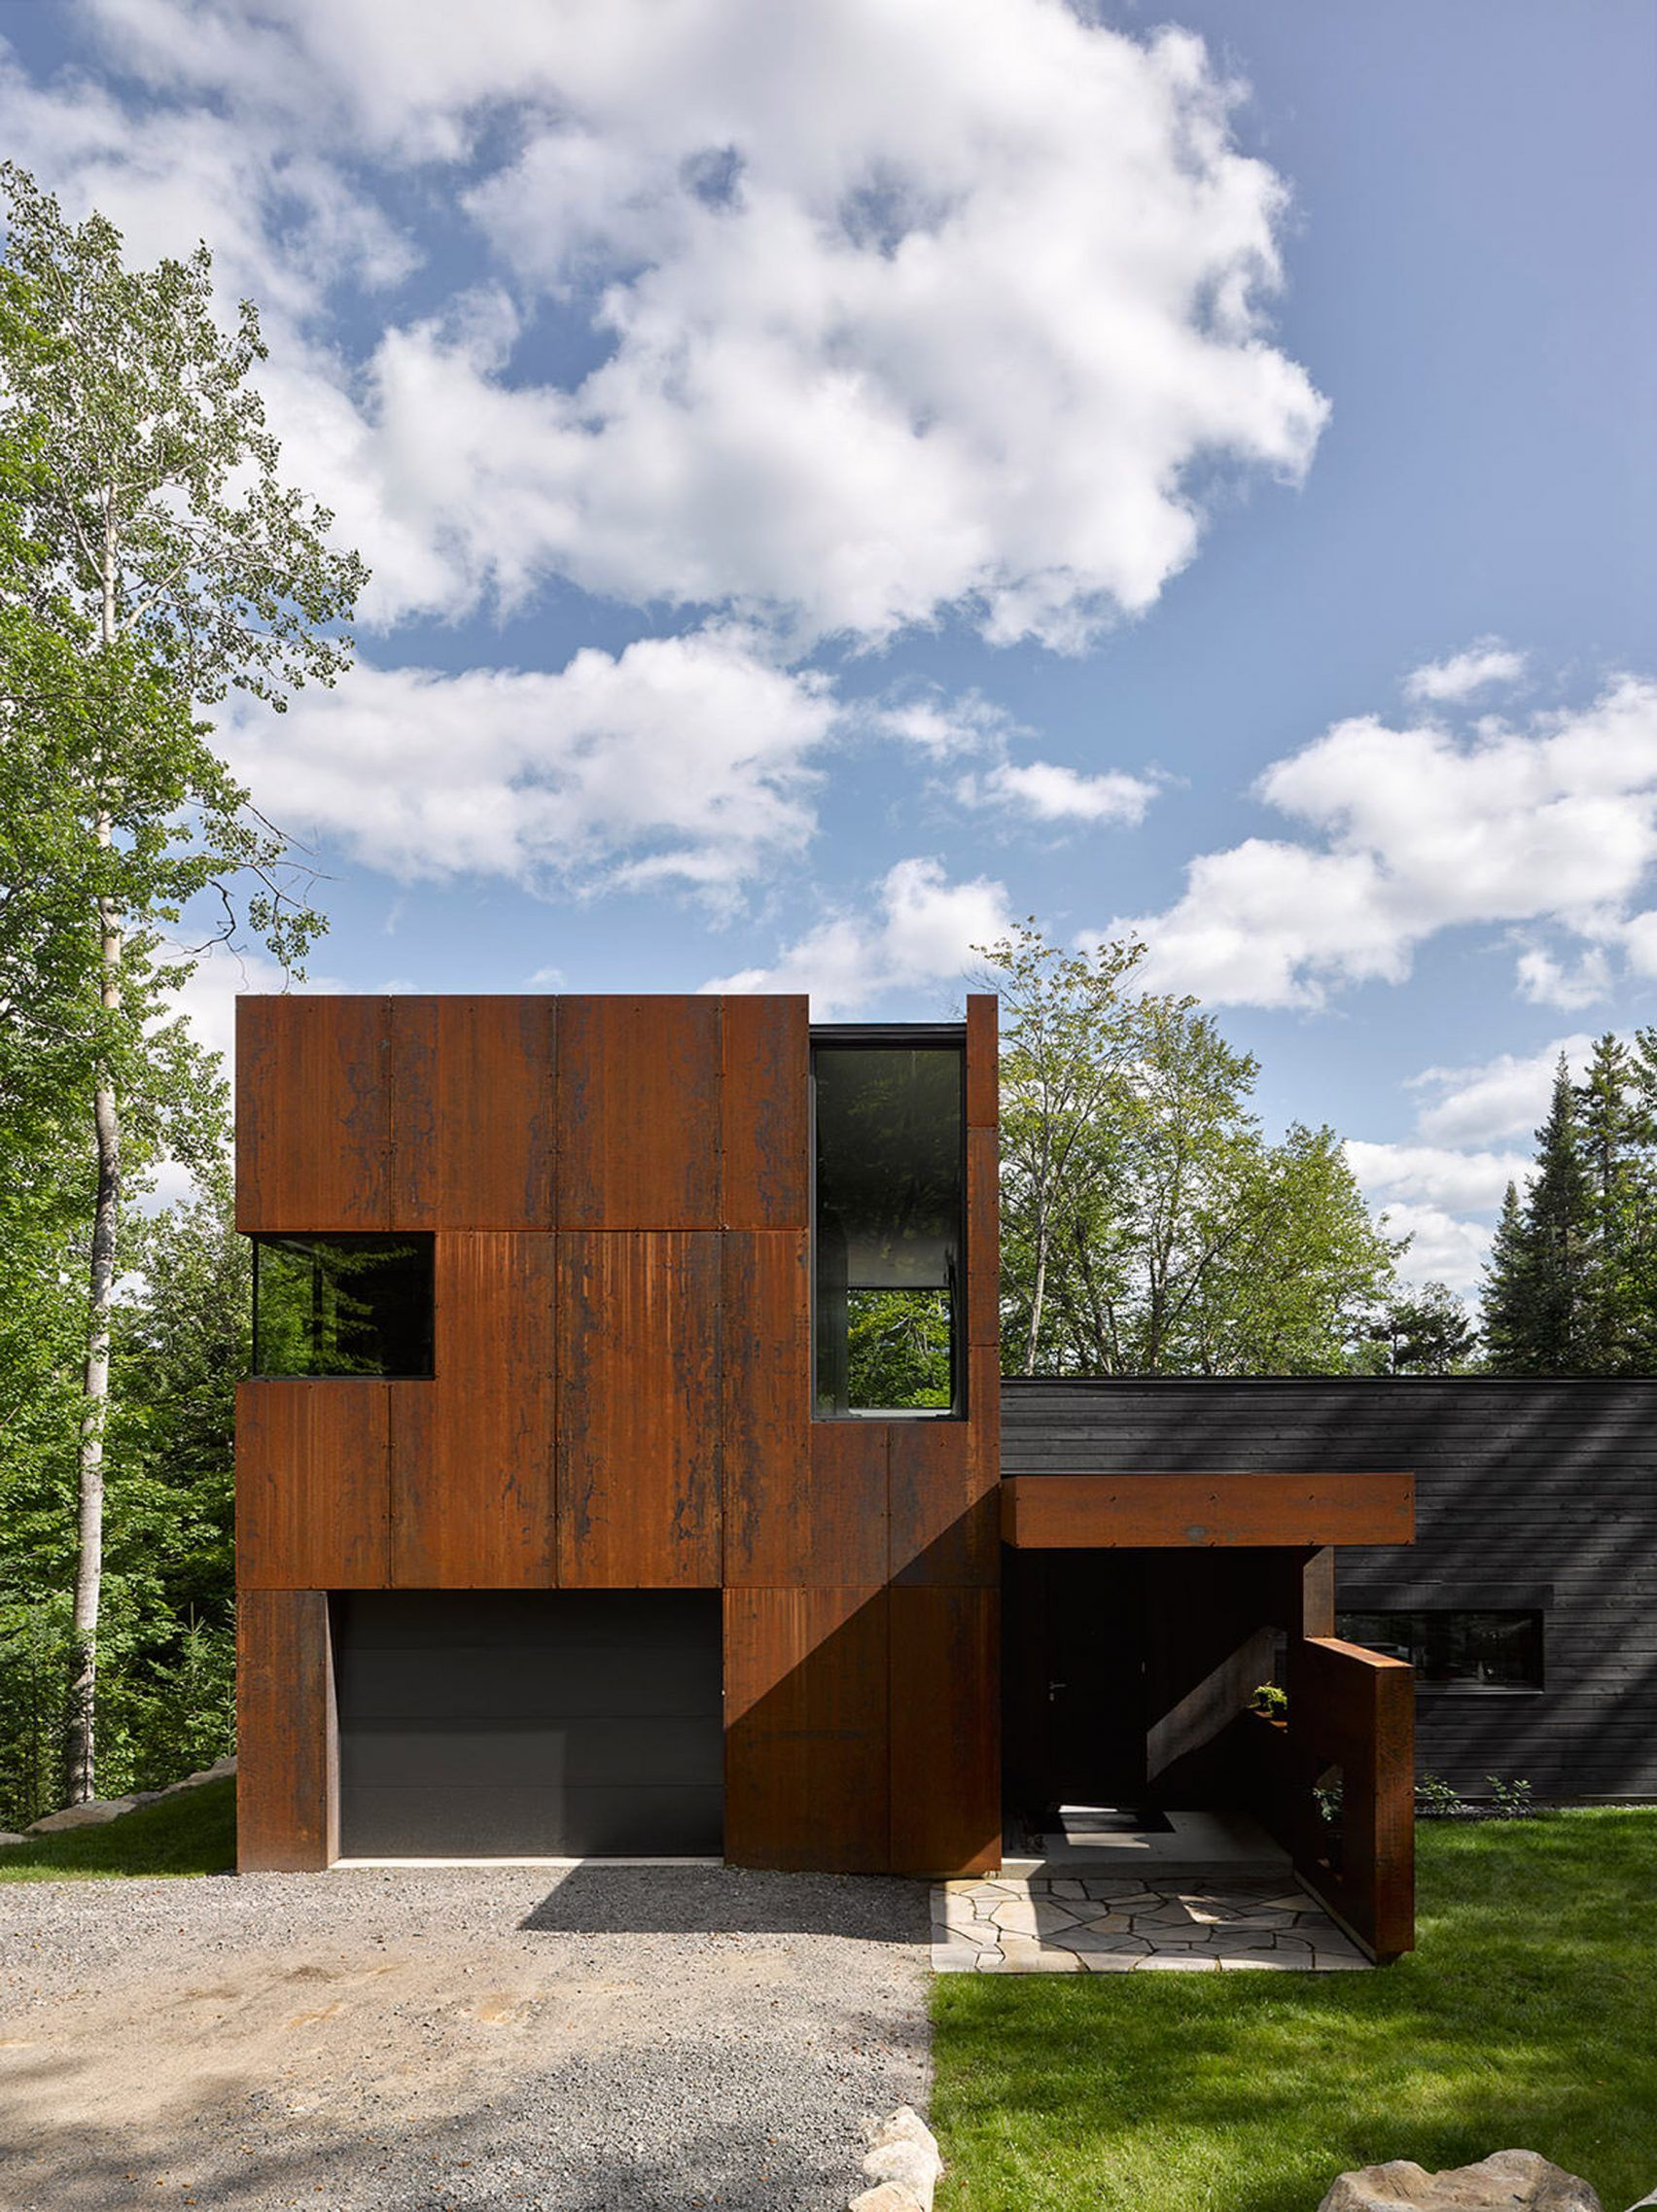 Canadian lake house by Paul Bernier features dark rusted